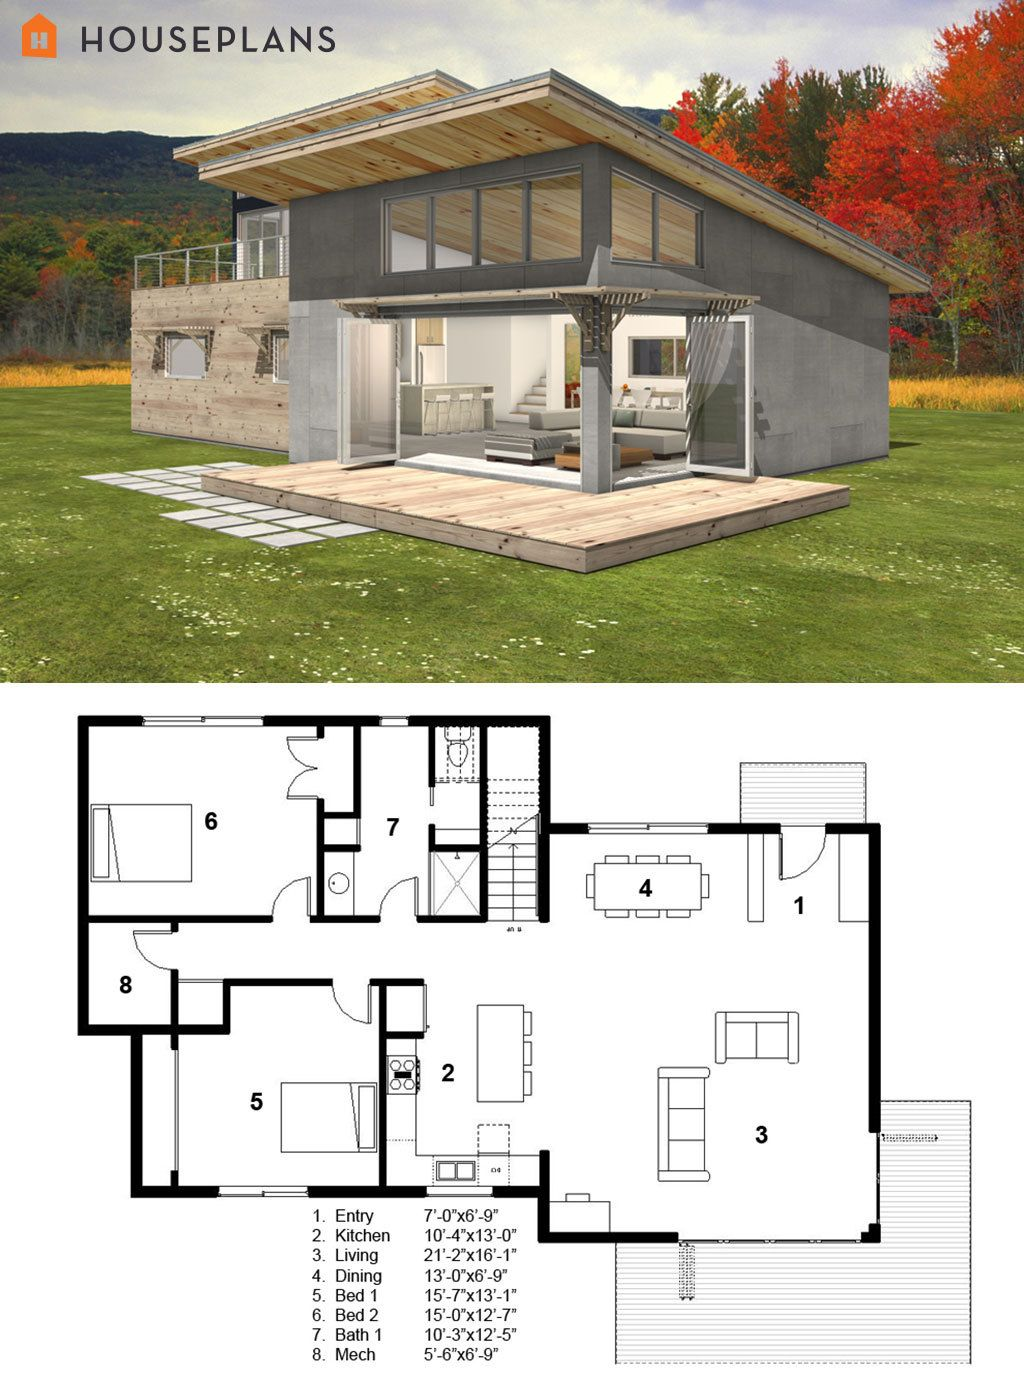 Modern style house plan 3 beds baths 2115 sq ft for Modern mansion house plans